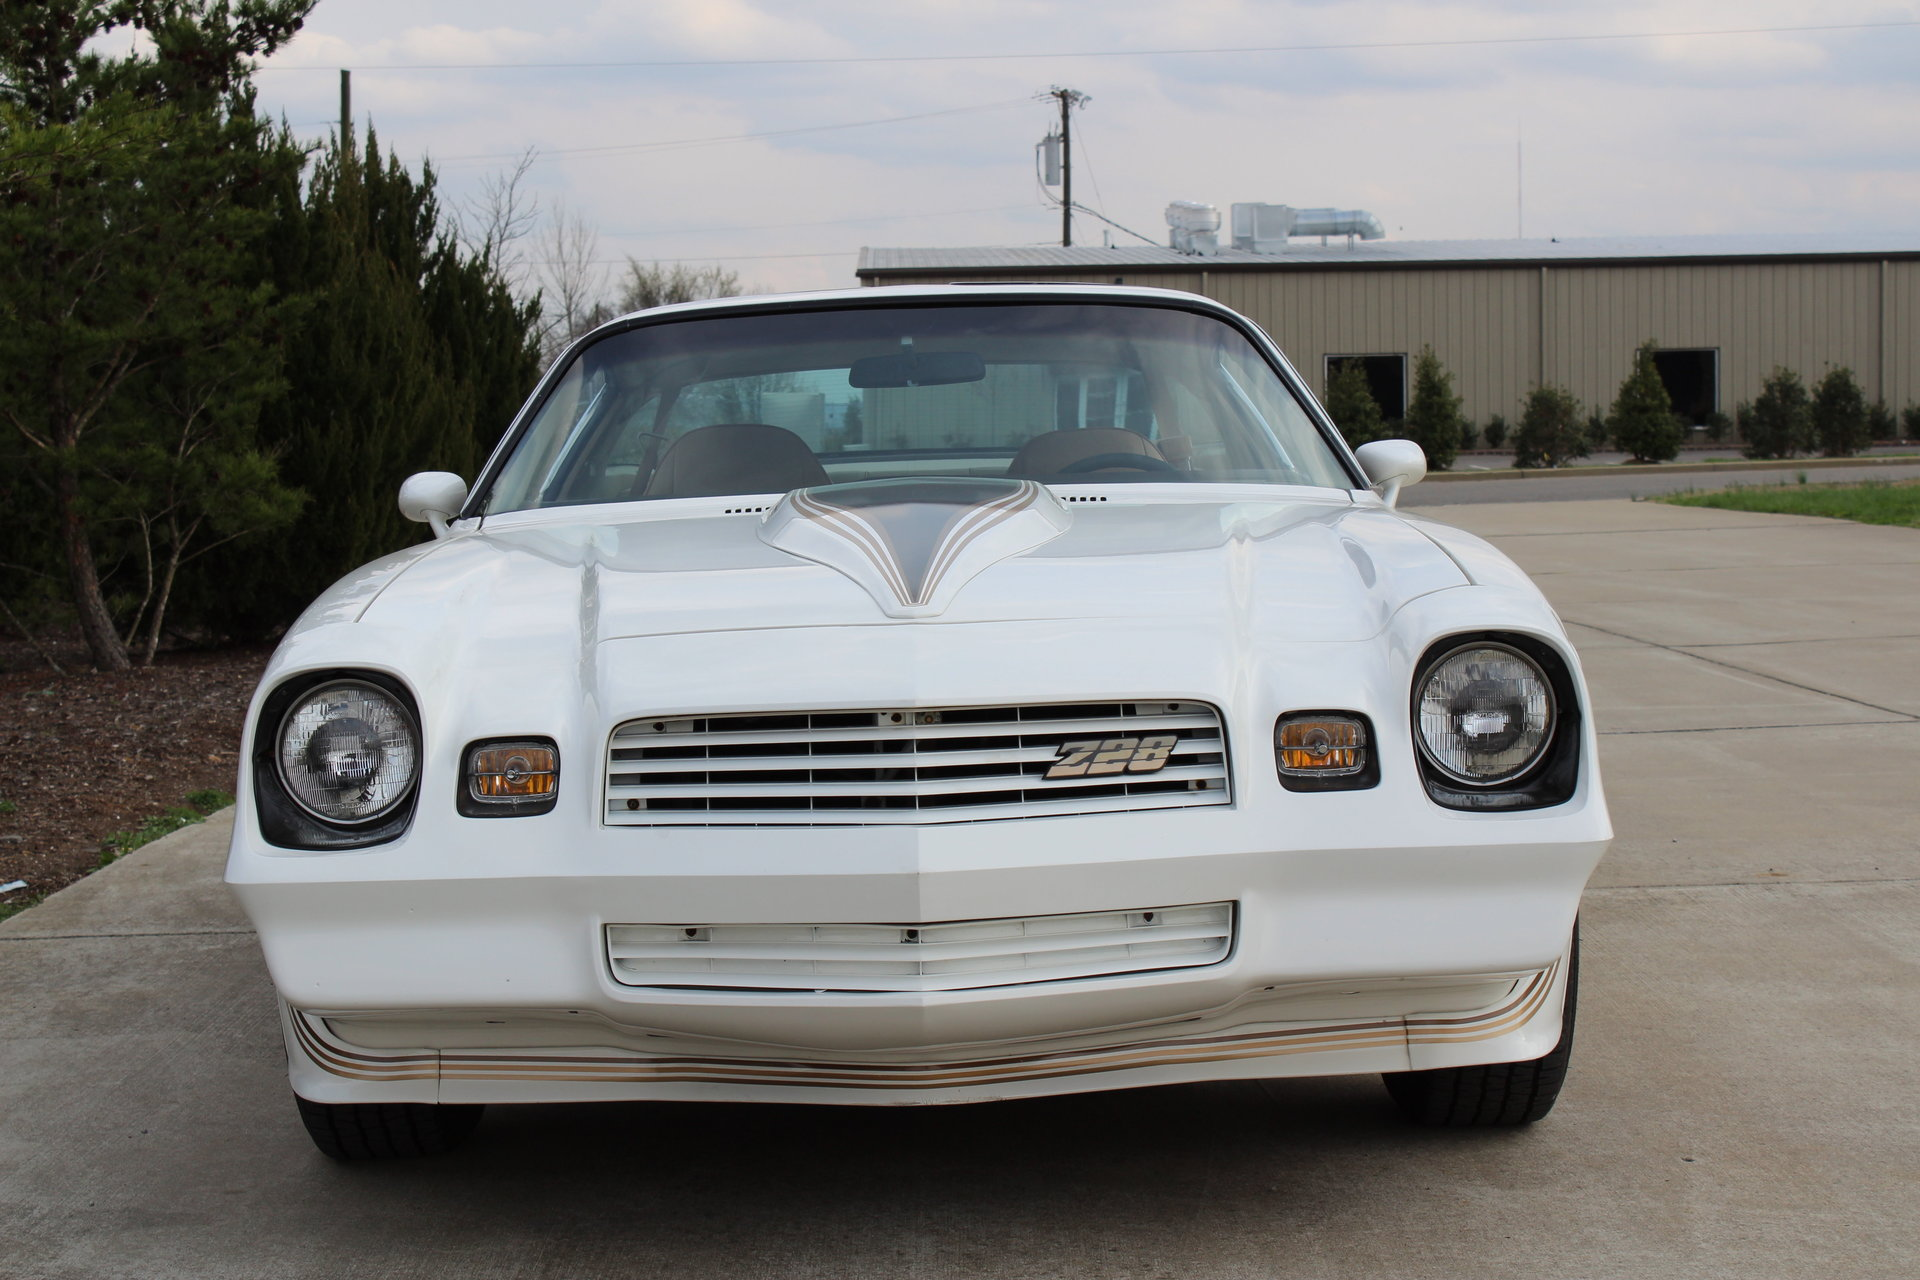 1981 Chevrolet Camaro Z28 For Sale 83298 Mcg